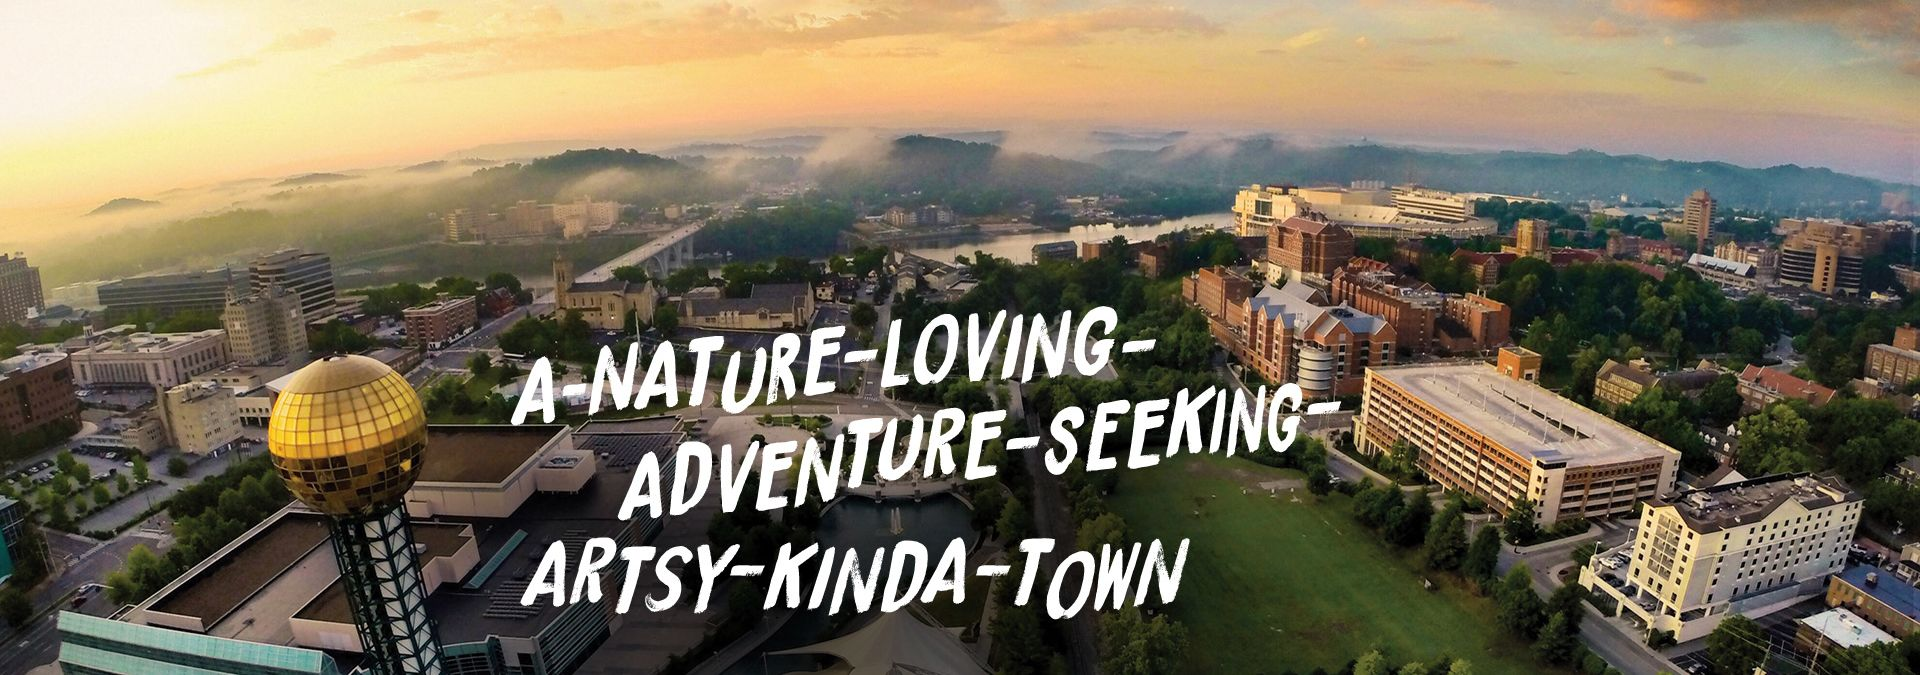 Nature loving adventure artsy town